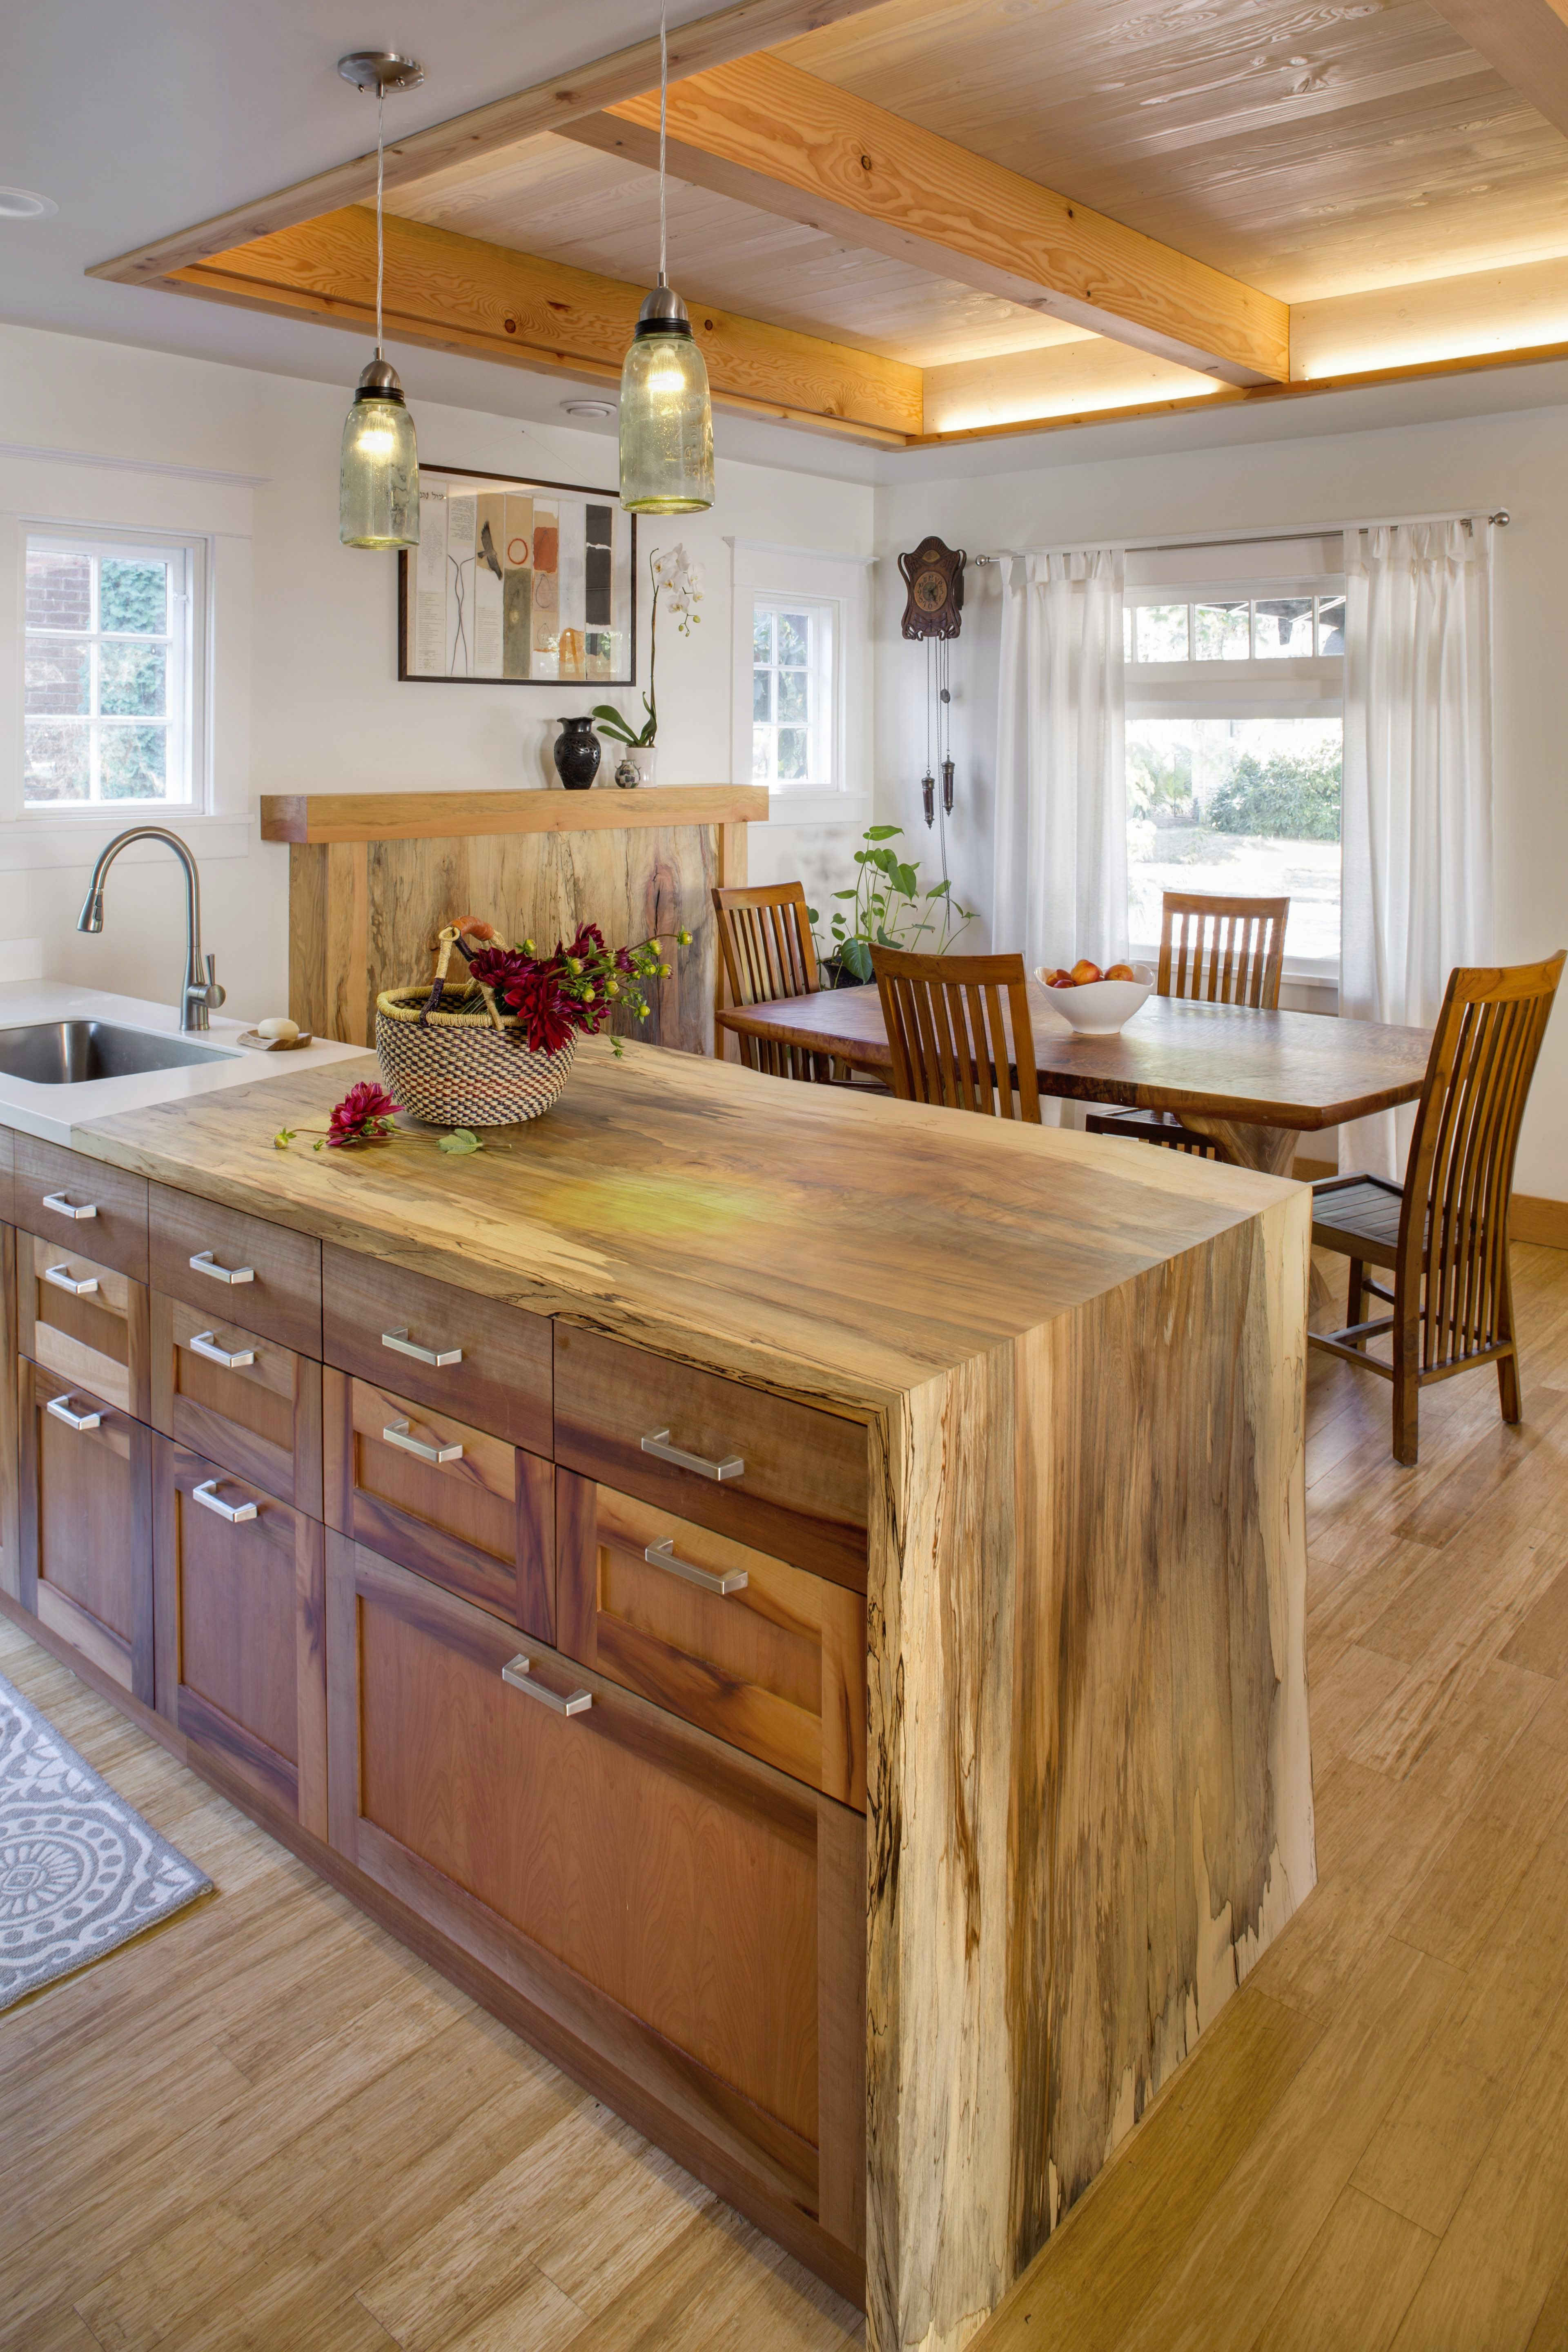 Wood Slab Kitchen Countertops Lifeedge Salvaged Wood Slab Countertop Custom Cabinetry And